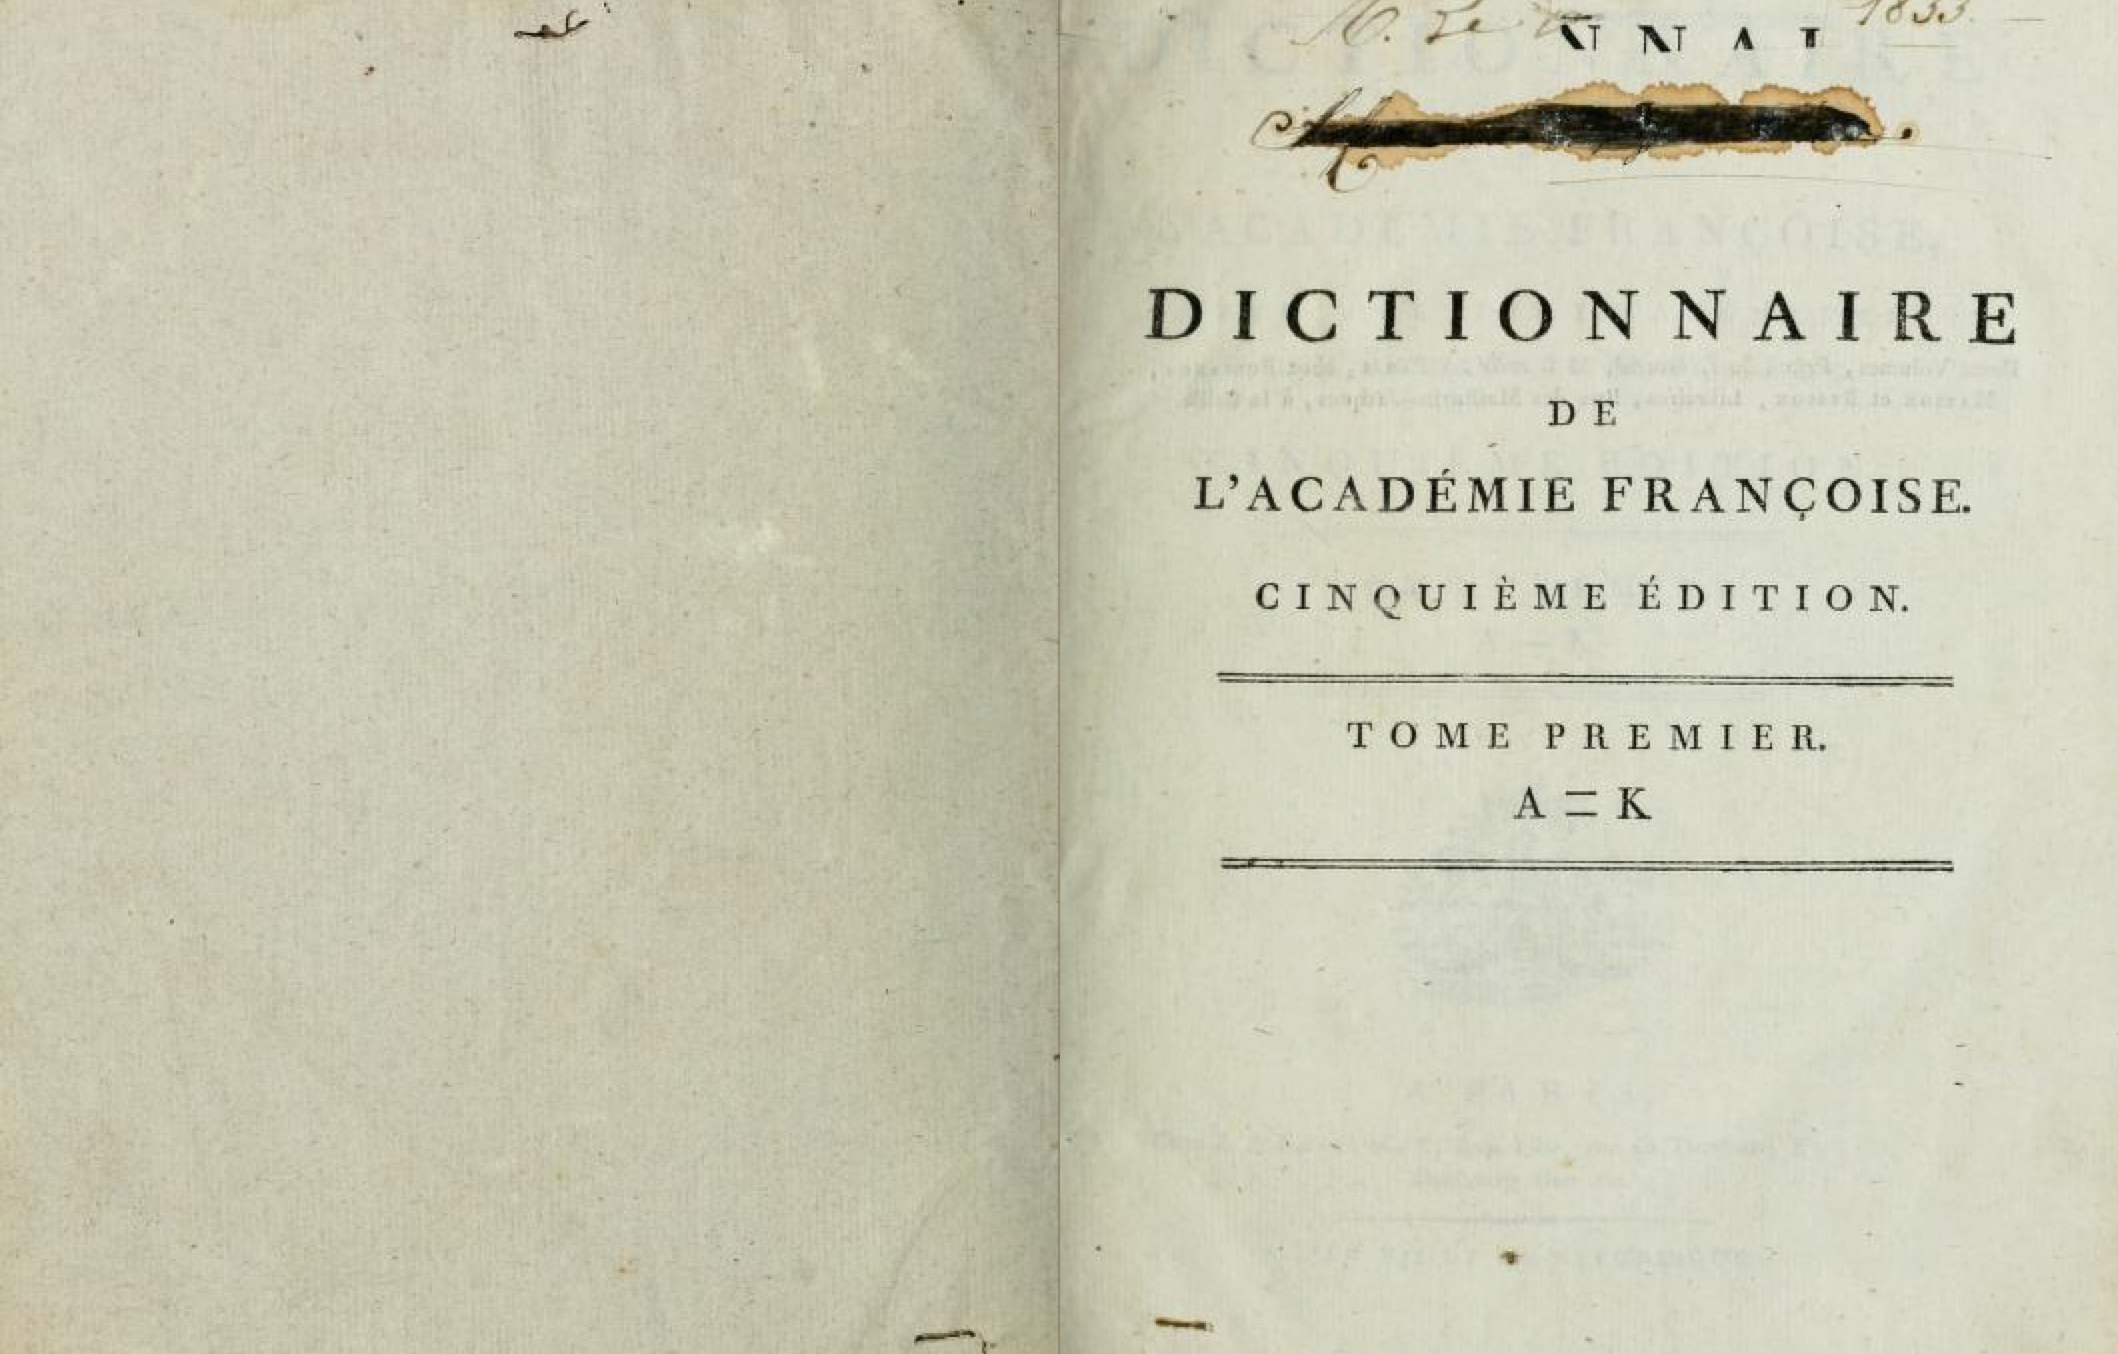 4TH PAGE VIEW OF THE DICTIONNAIRE DE L'ACADEMIE FRANCAISE (1799), DIGITIZED BY  THE INTERNET ARCHIVE